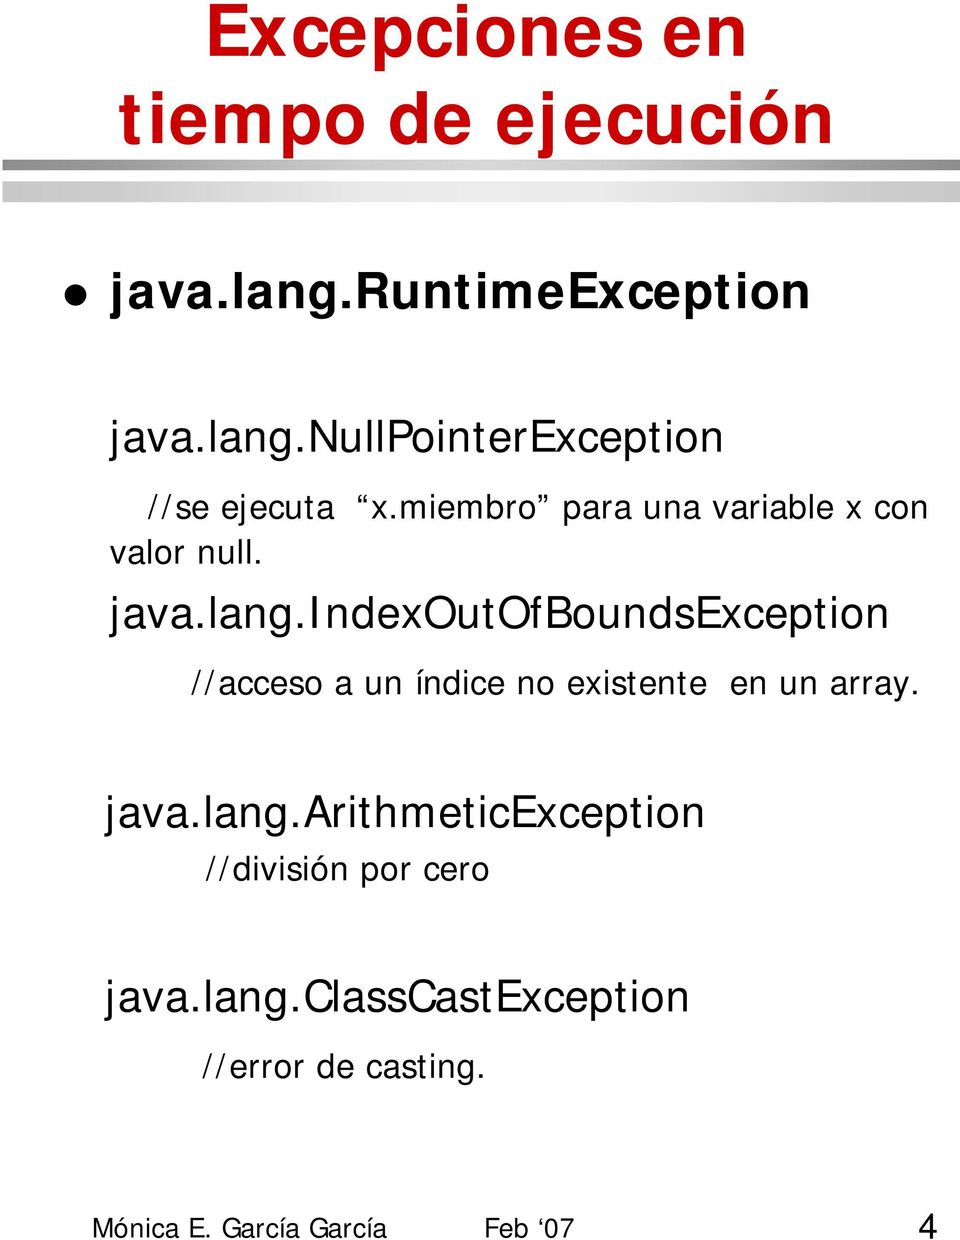 indexoutofboundsexception //acceso a un índice no existente en un array. java.lang.